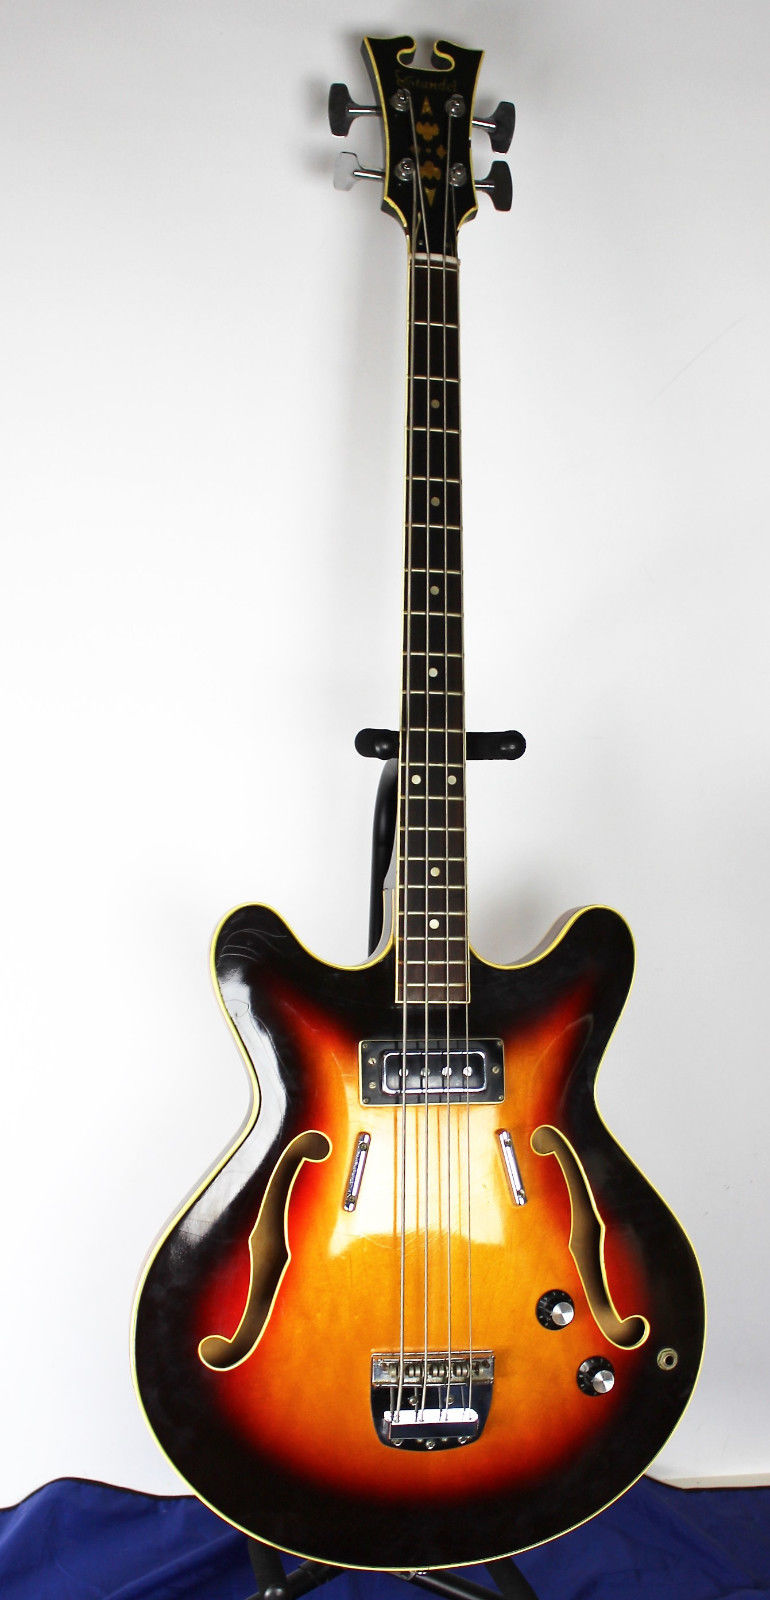 Buy-VINTAGE-STANDEL-400S-BASS-GUITAR-SUNBURST.-EXTREMELY-RARE-with-case.